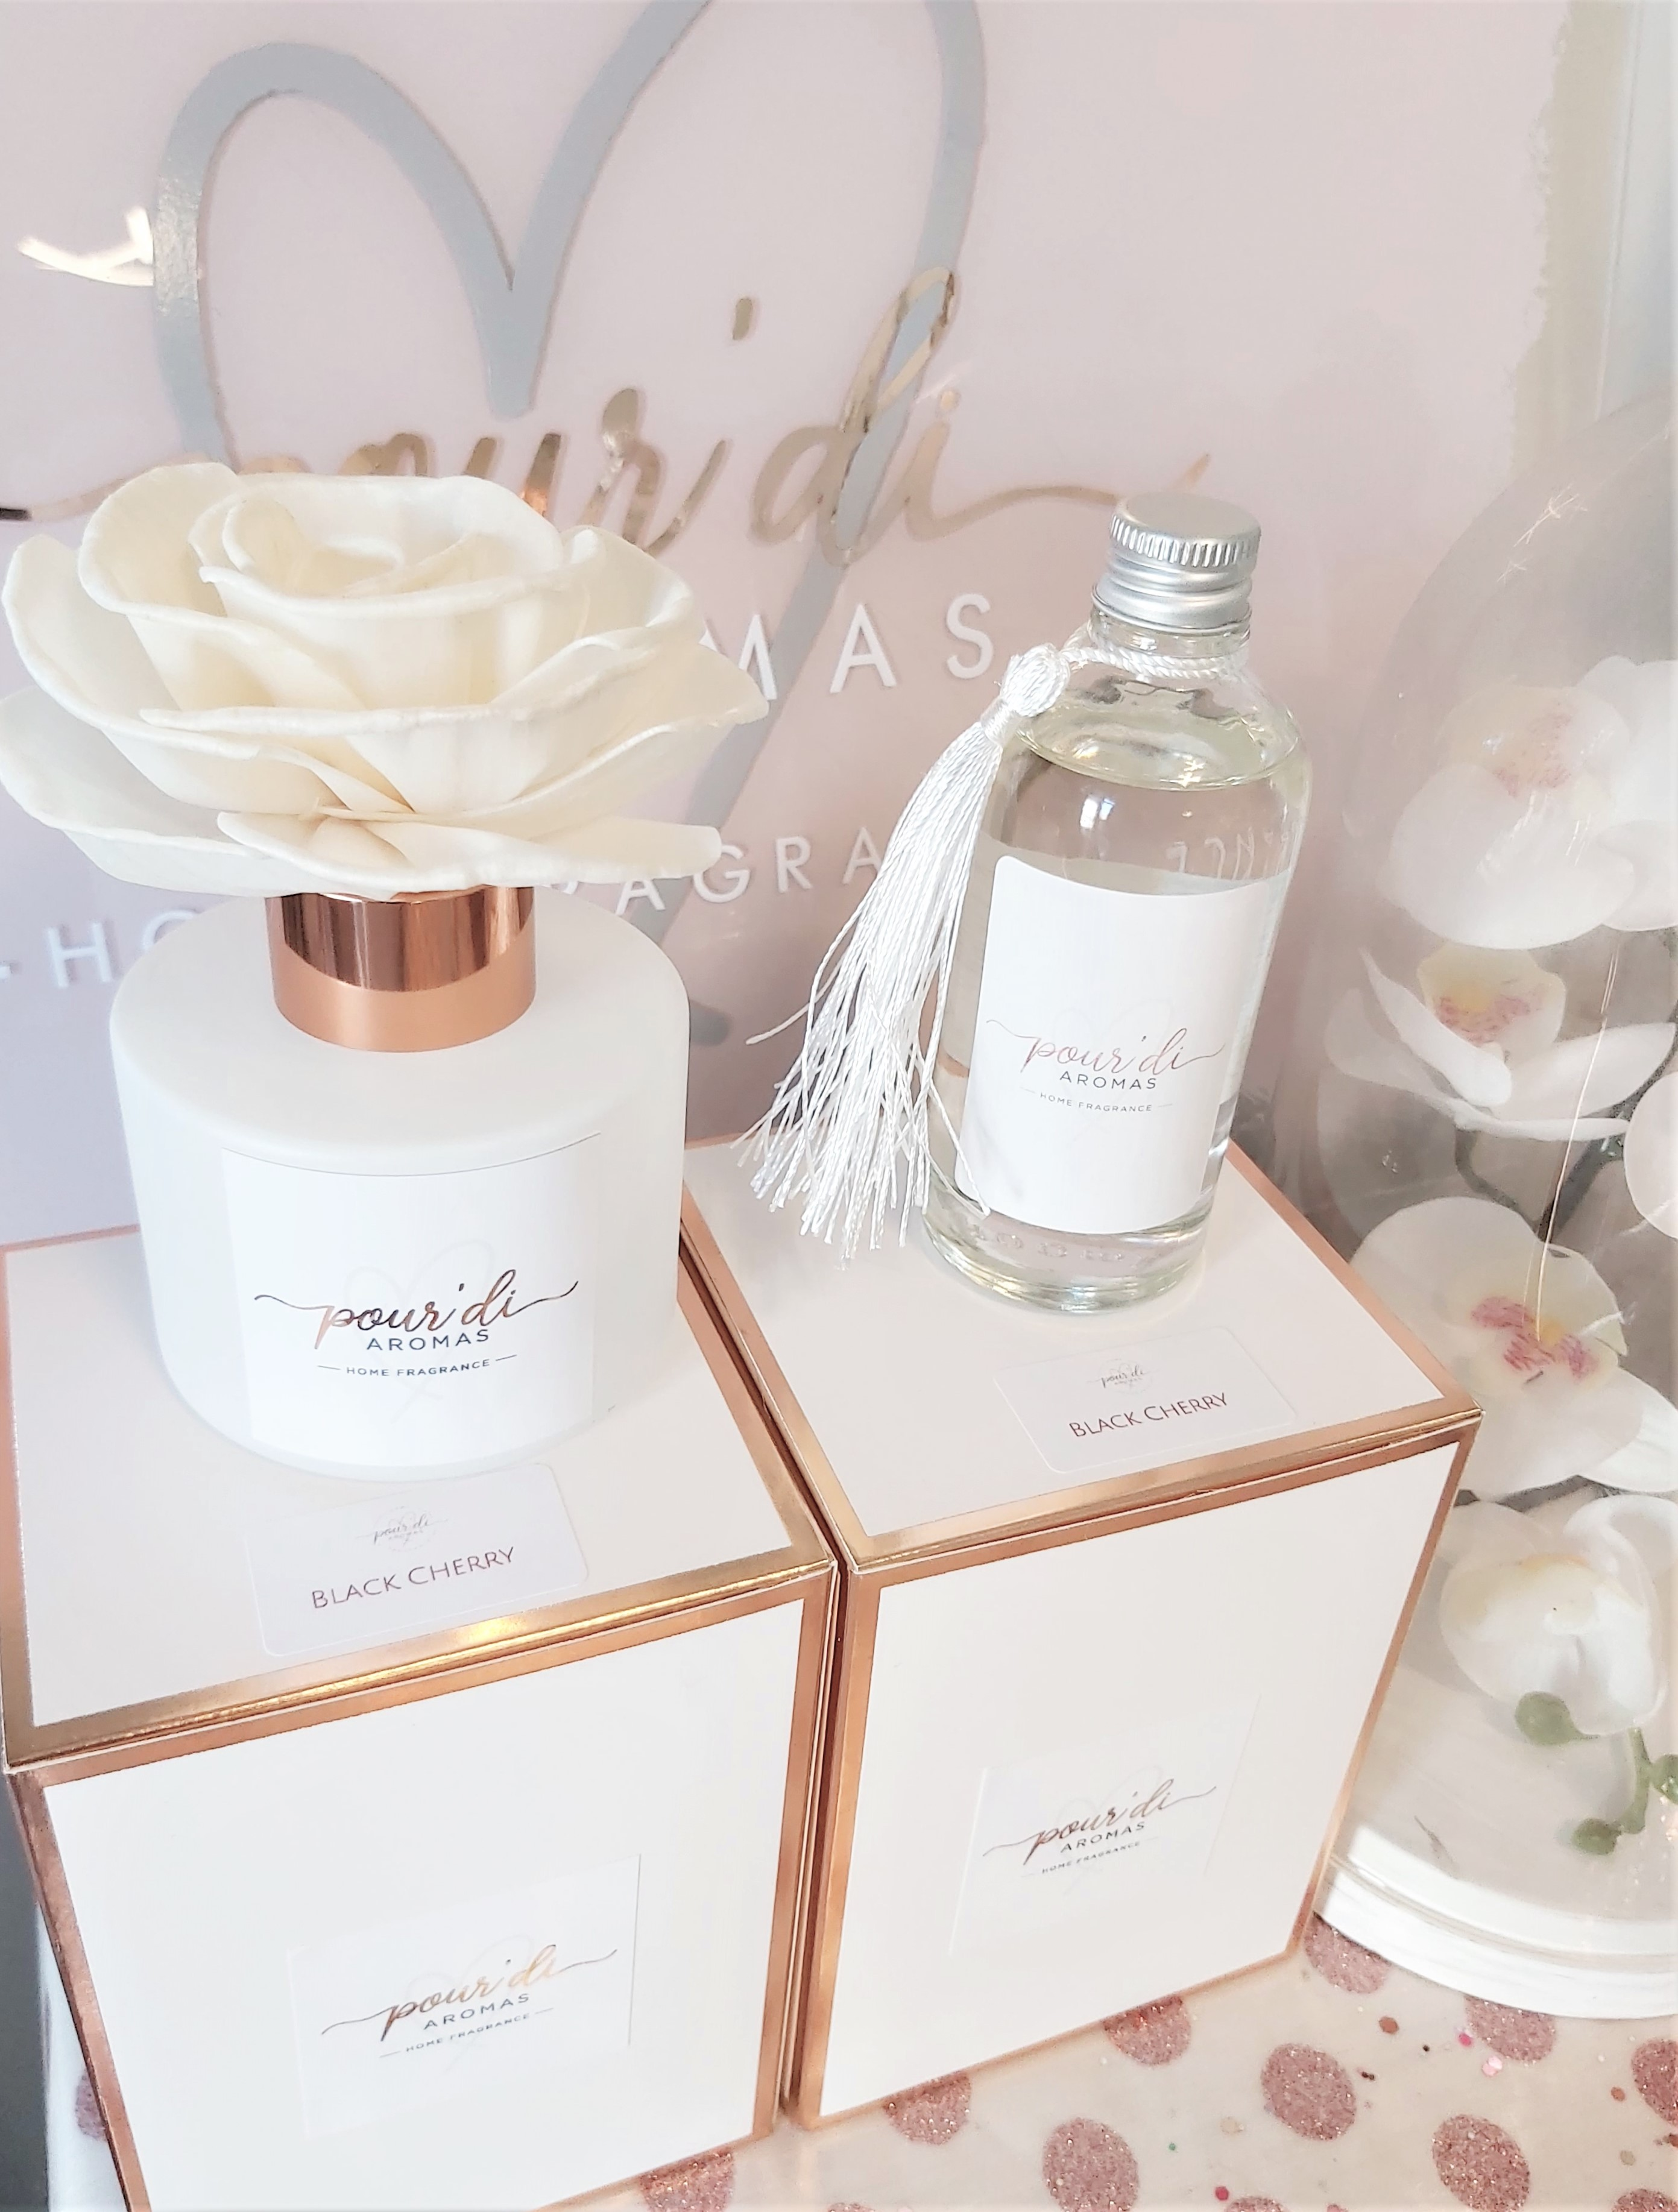 Autumn Edition Diffuser & Refill Set